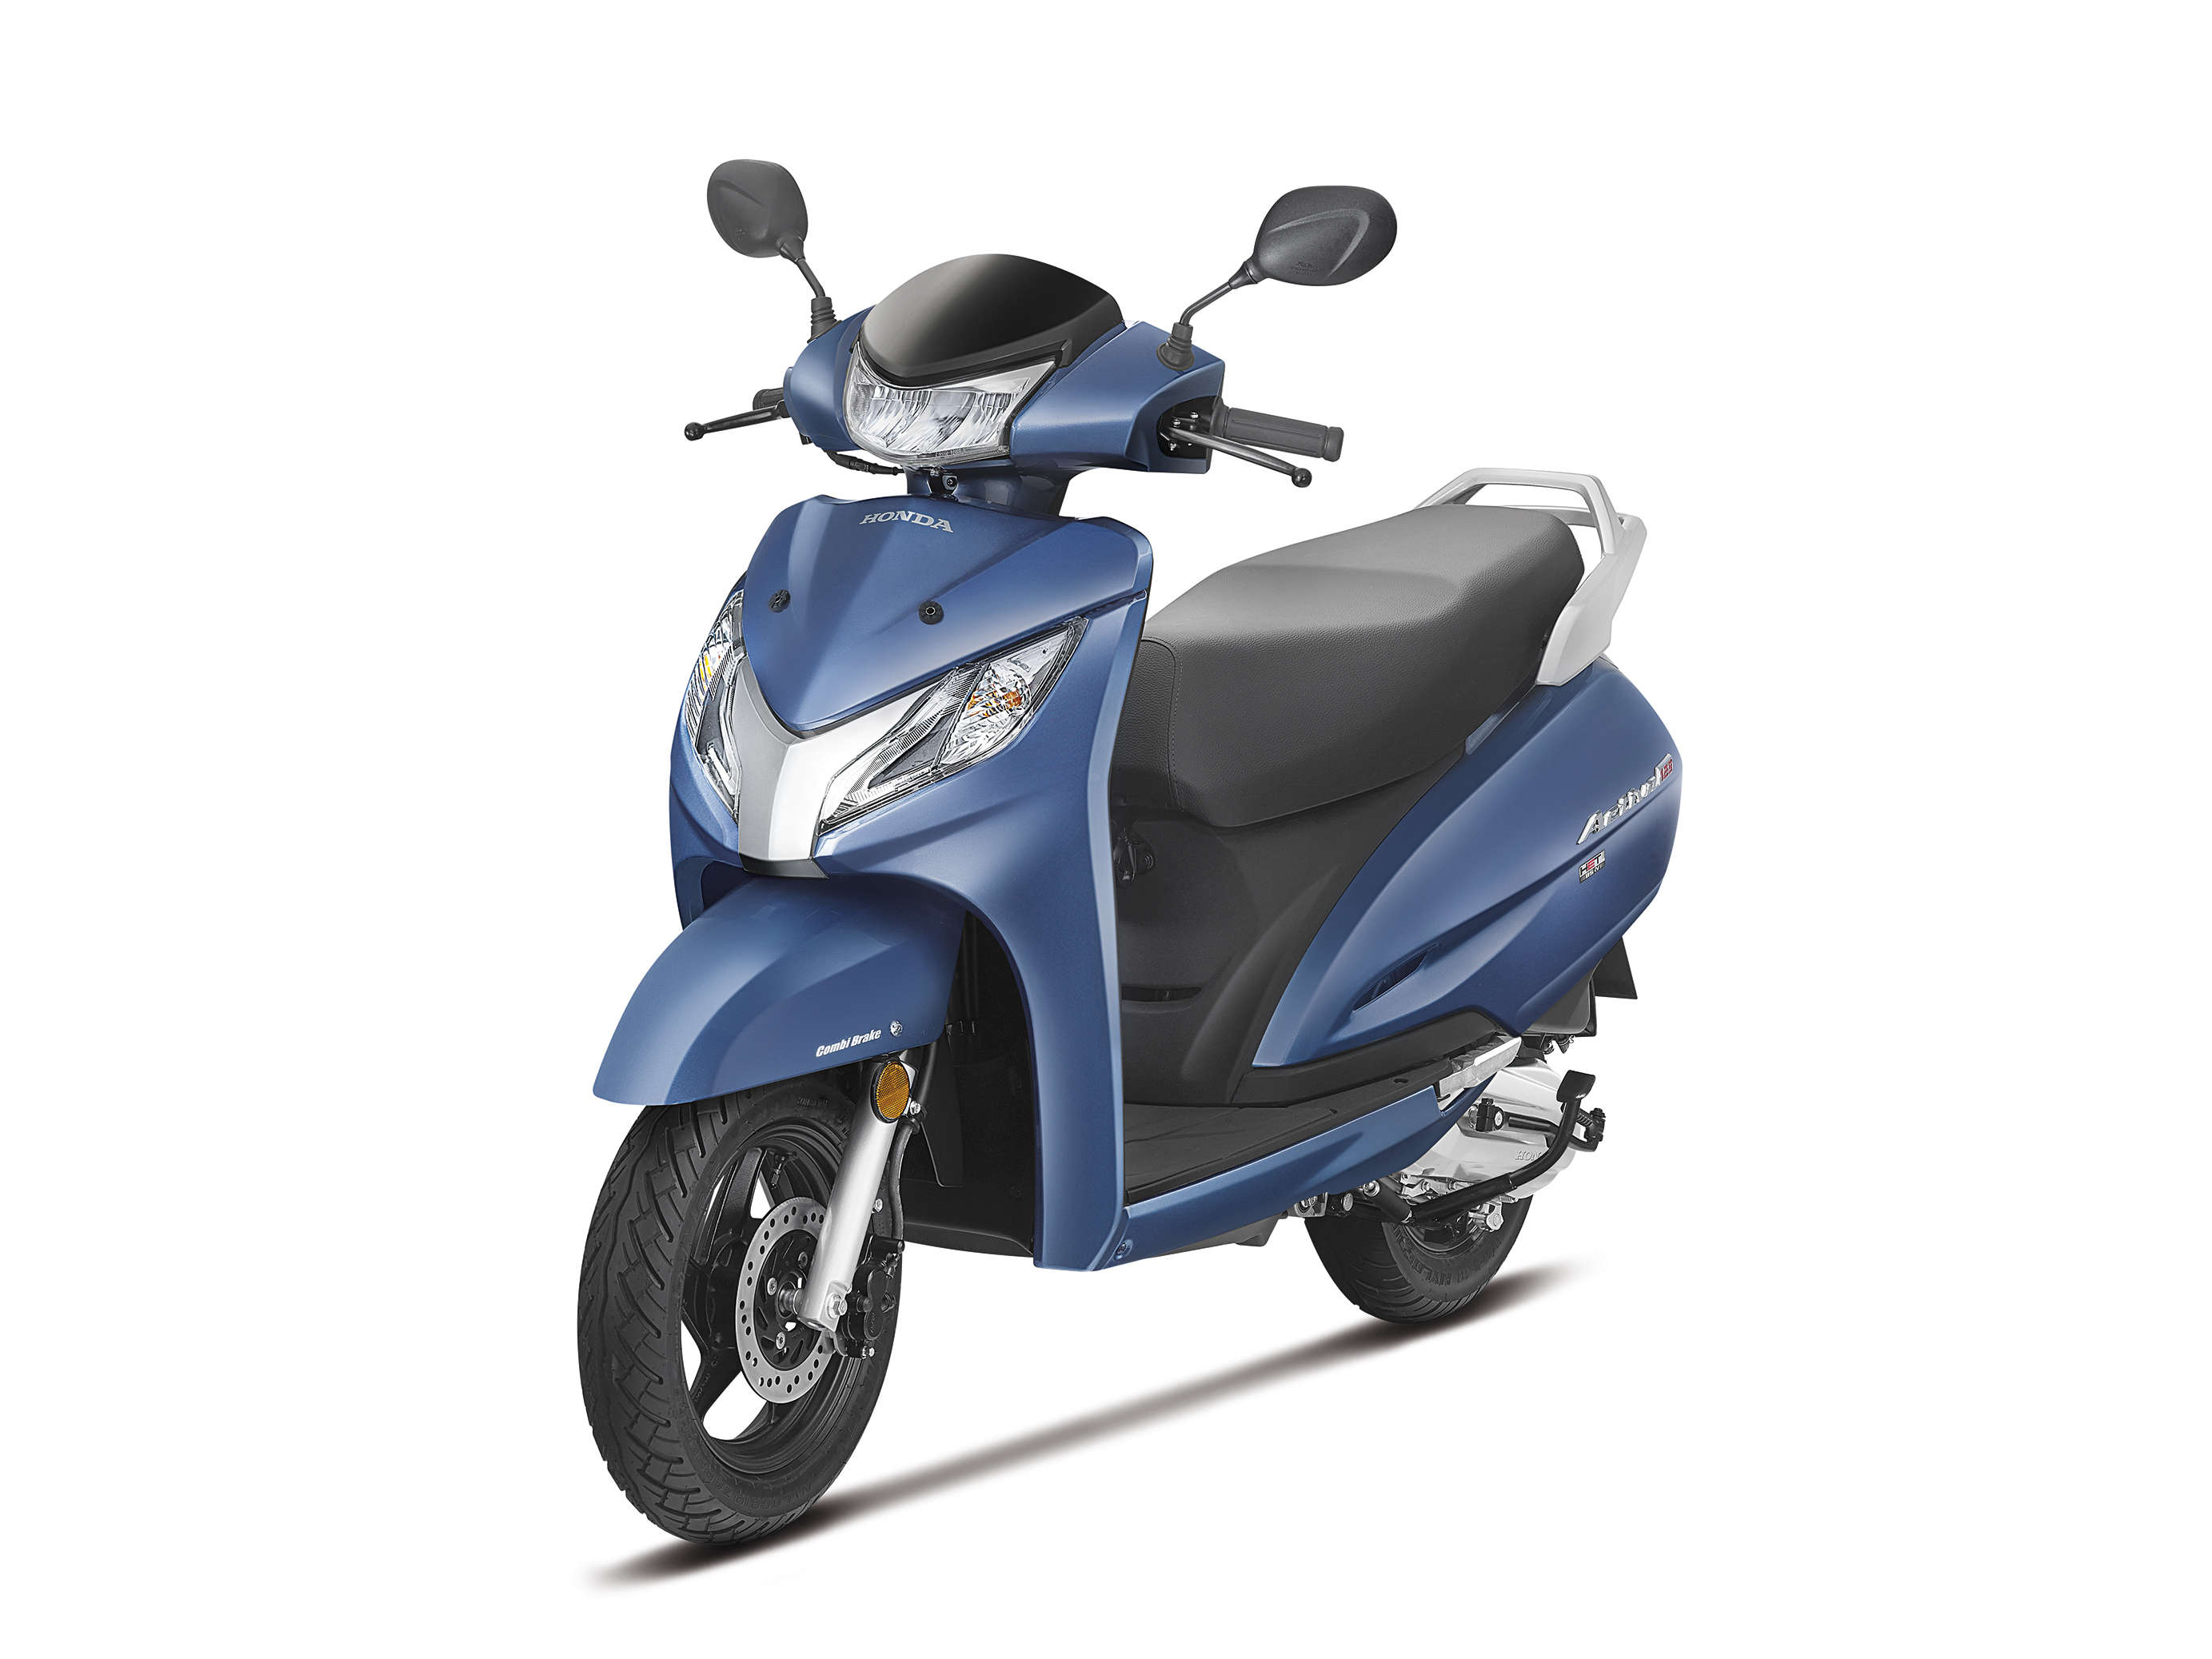 Activa 125 Honda Rolls Out 2018 Activa 125 At Rs 59621 Auto News